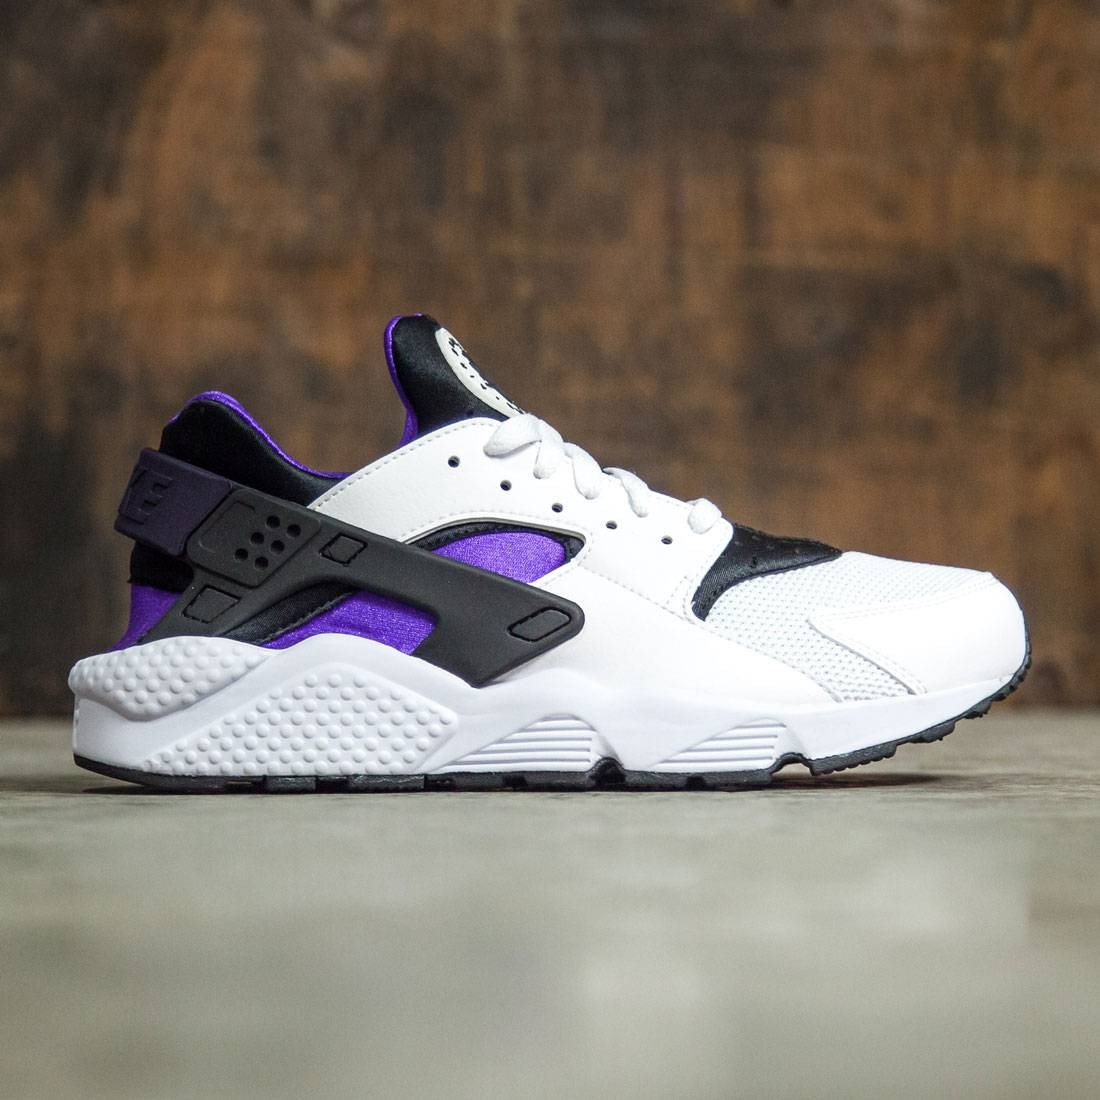 82441560b406 ... sweden nike men air huarache white hyper grape black purple dynasty  8fdcc c3a88